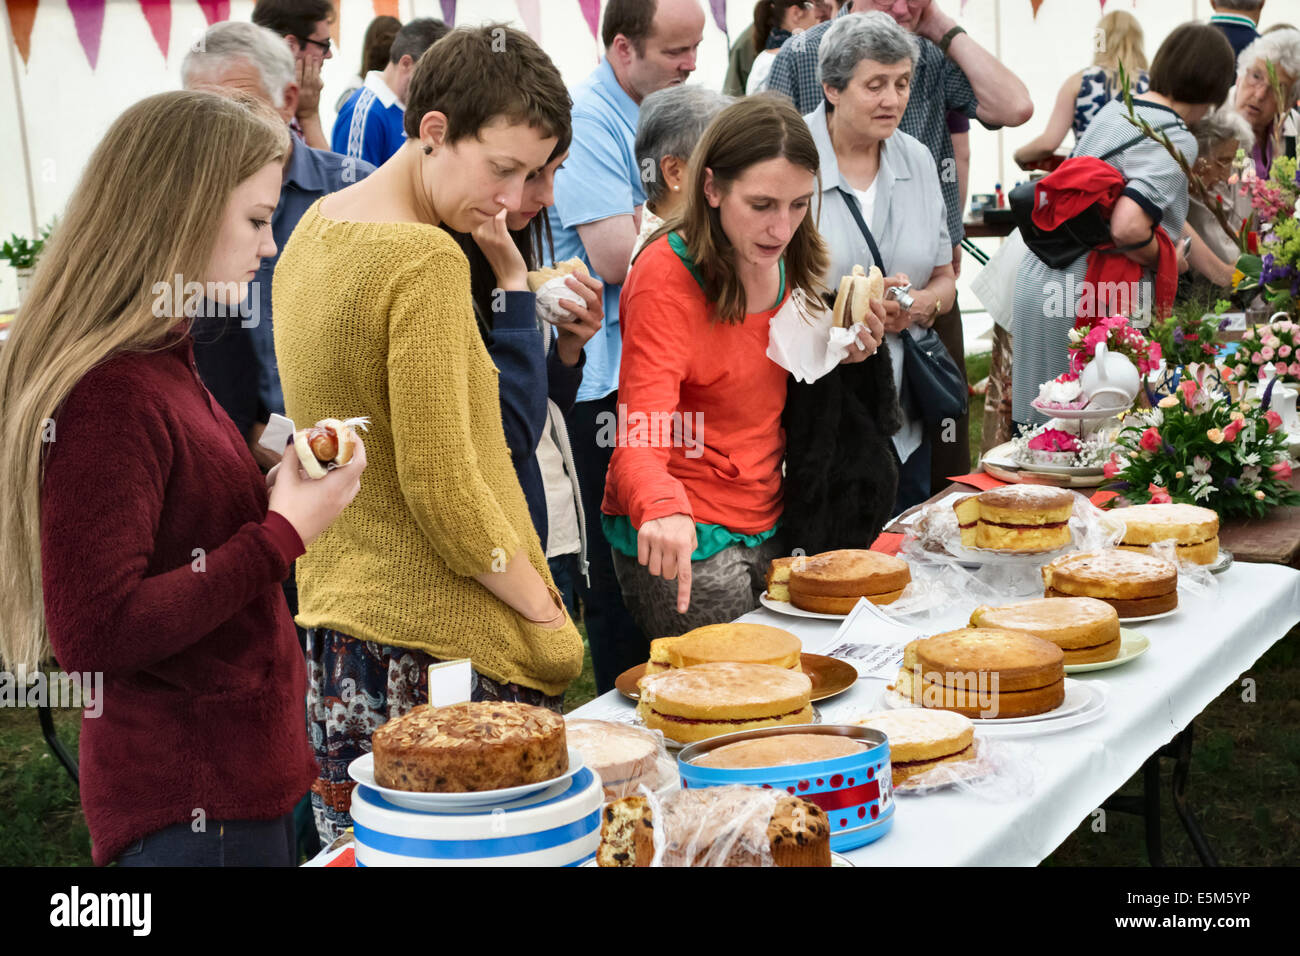 Inspecting home made sponge cakes at a village fete, UK - Stock Image